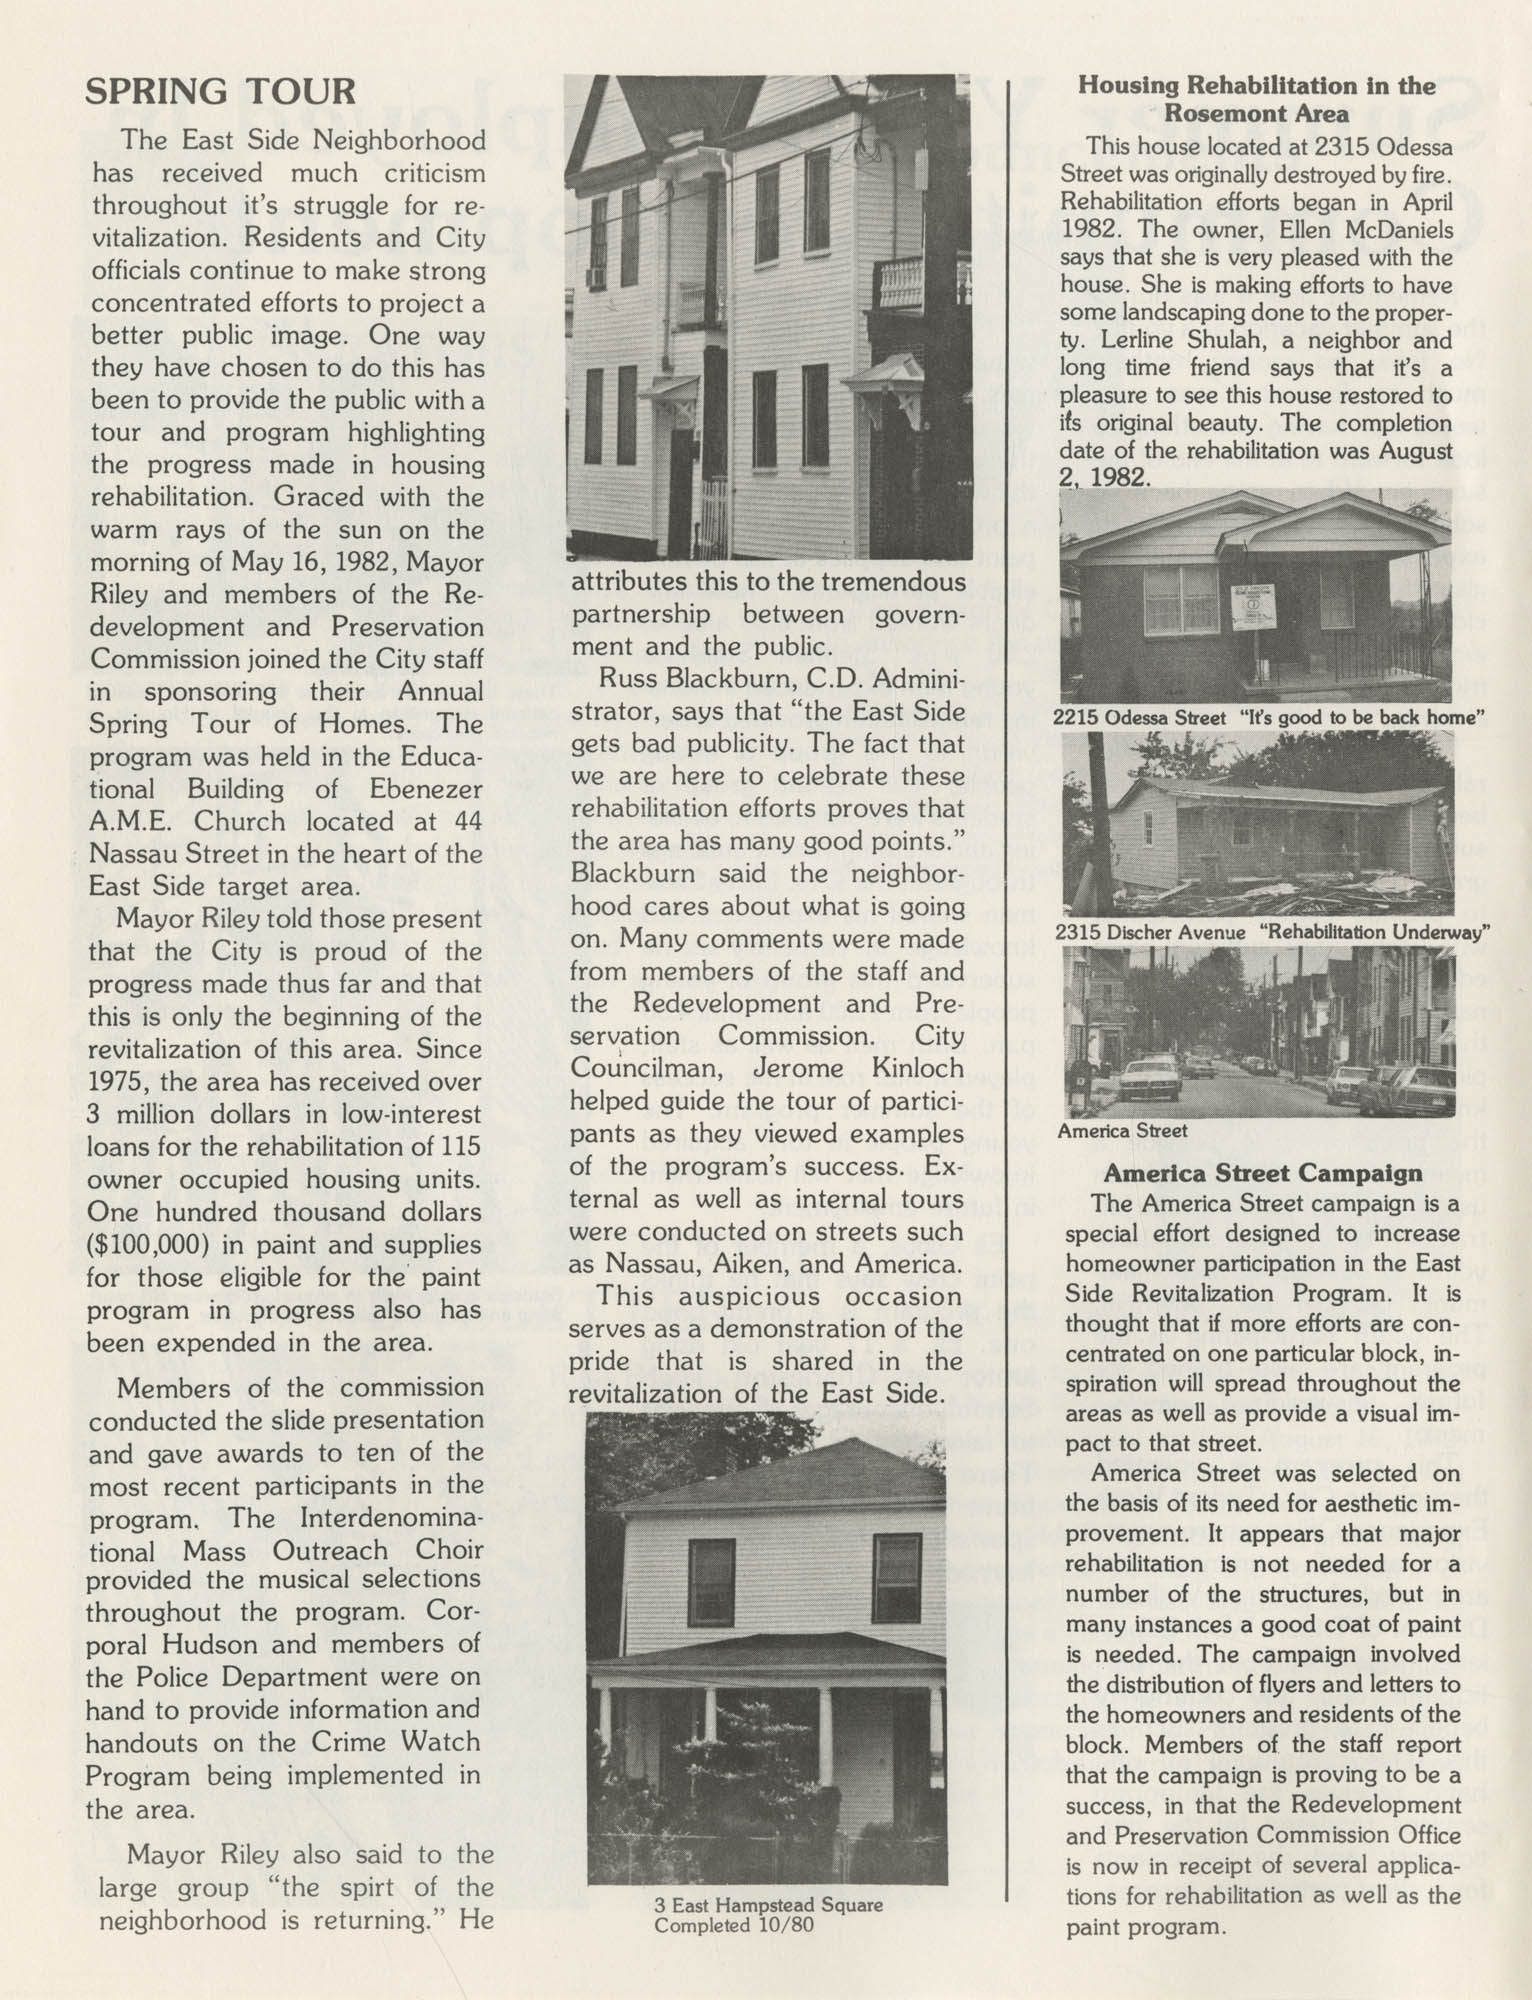 C. D. Newsletter, A City of Charleston Community Development Publication, Summer Issue - 1982, Page 3